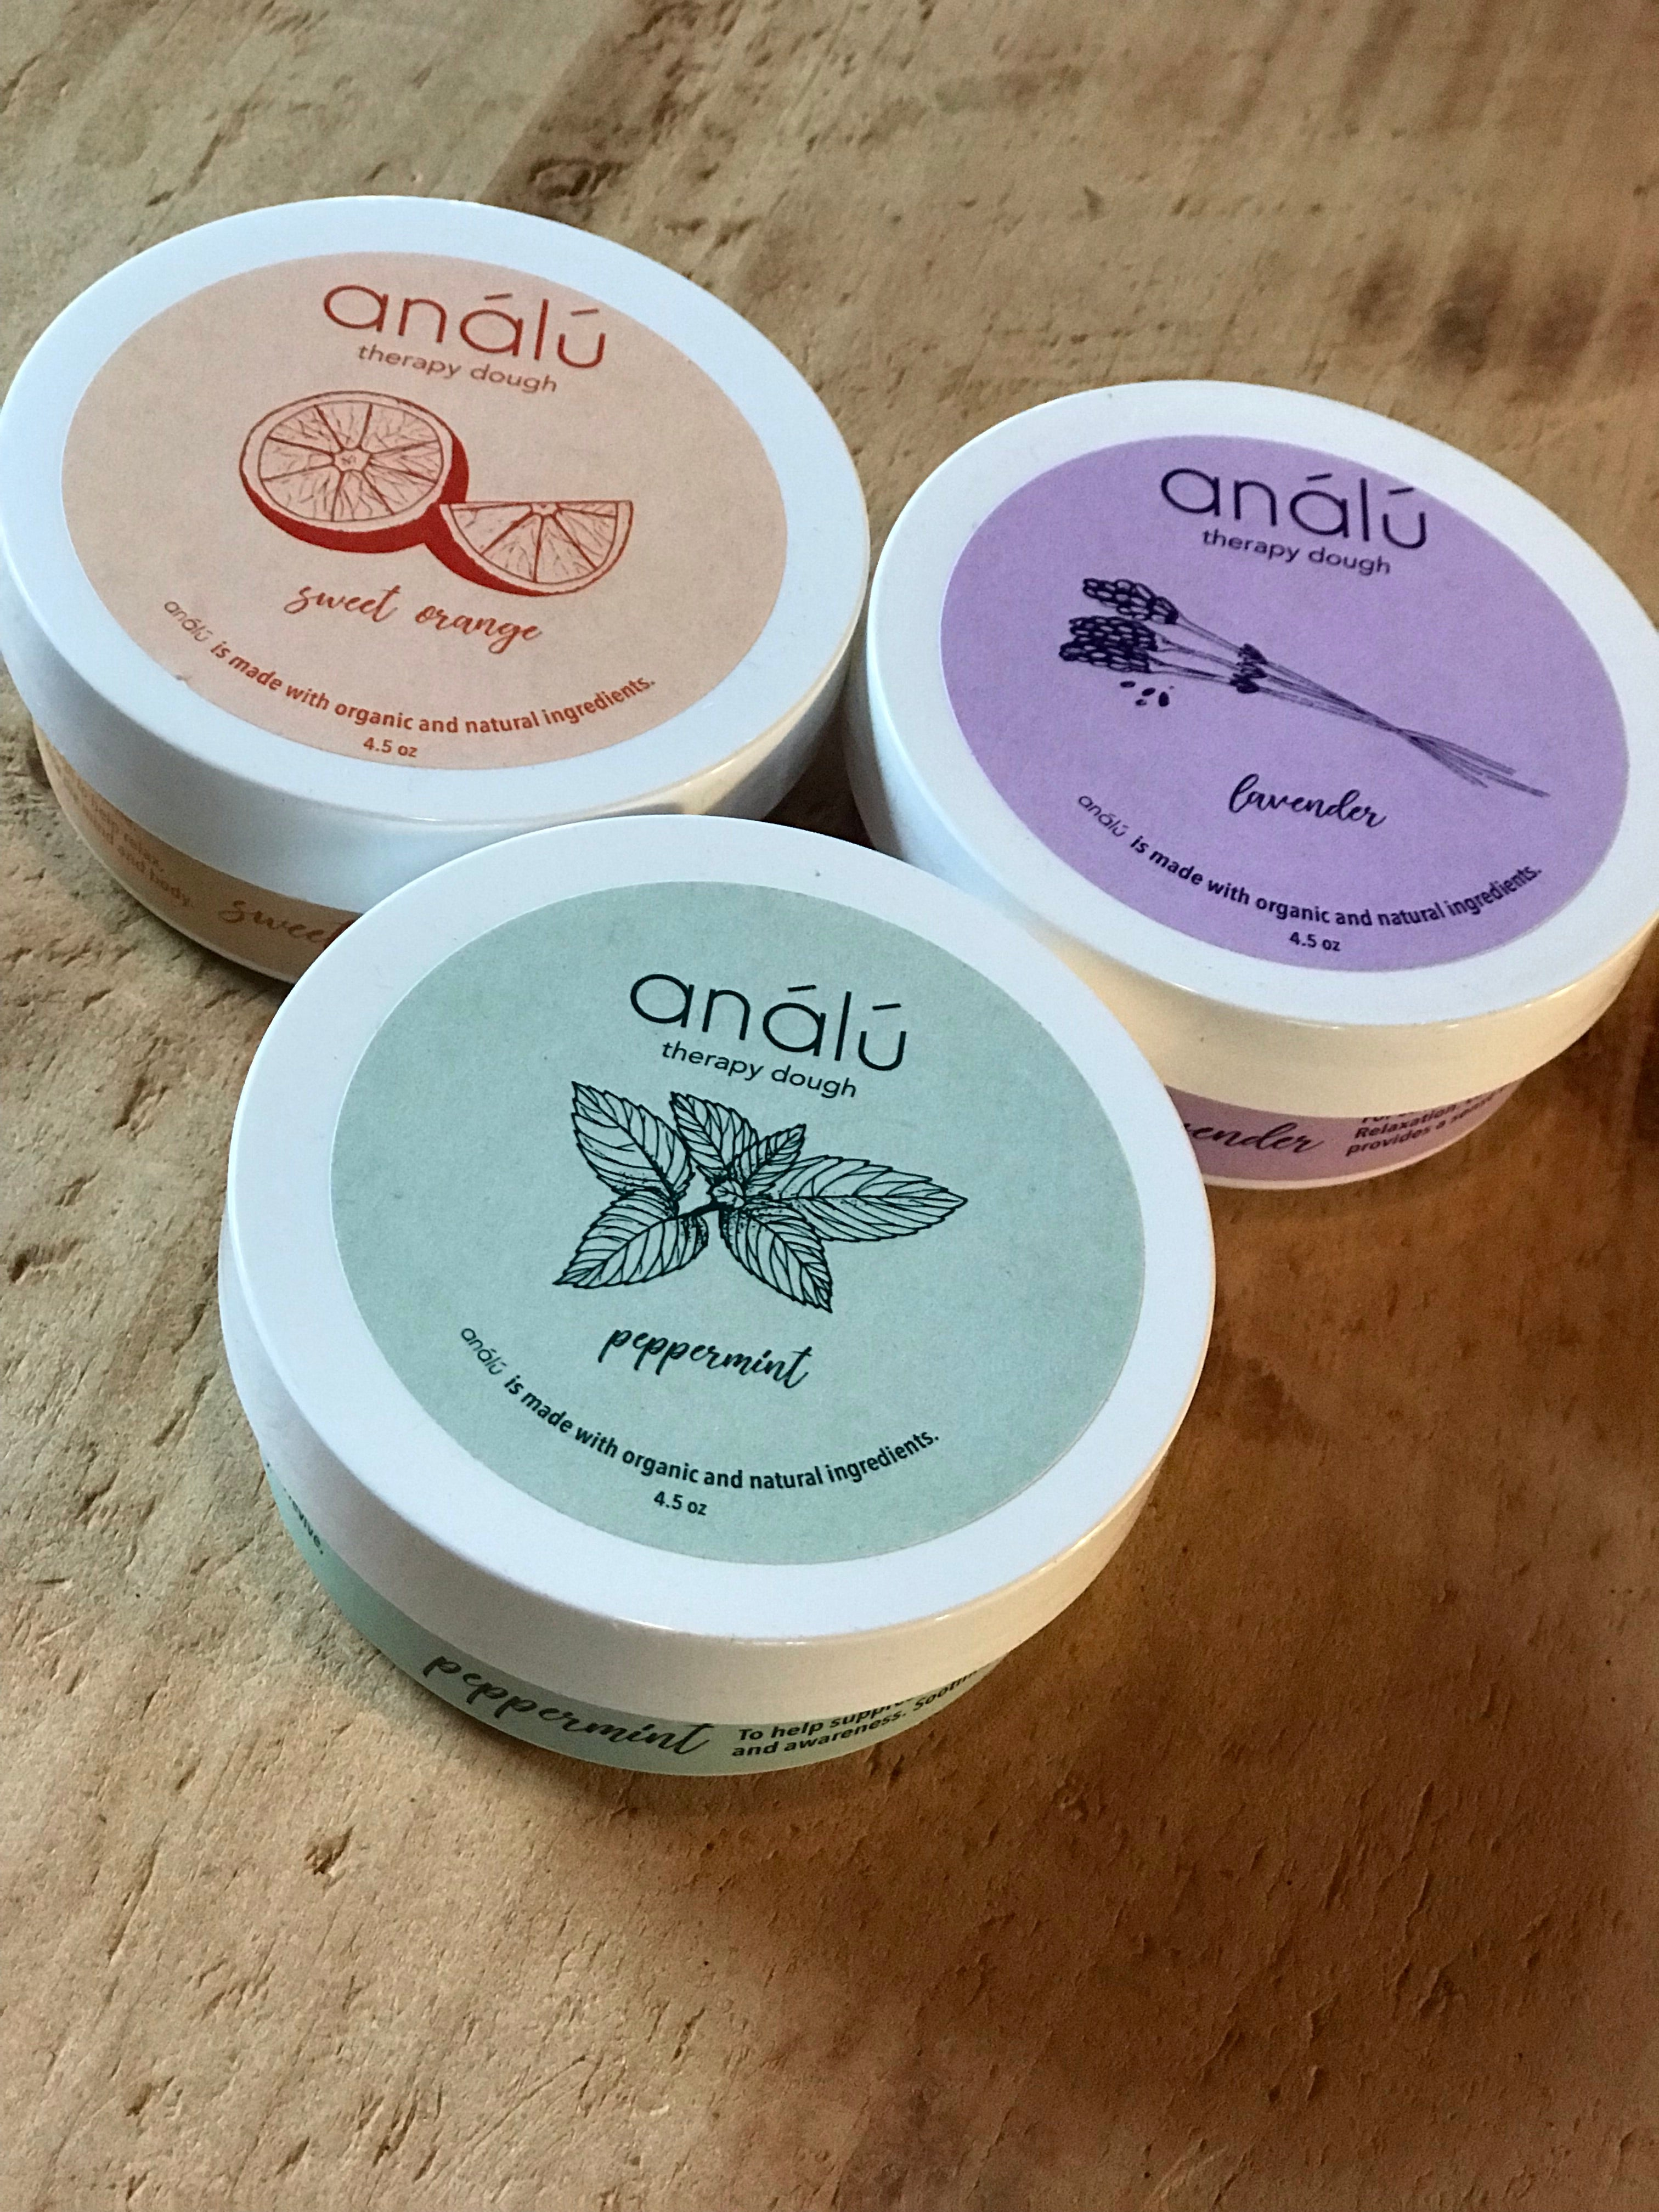 Analu Therapy Dough